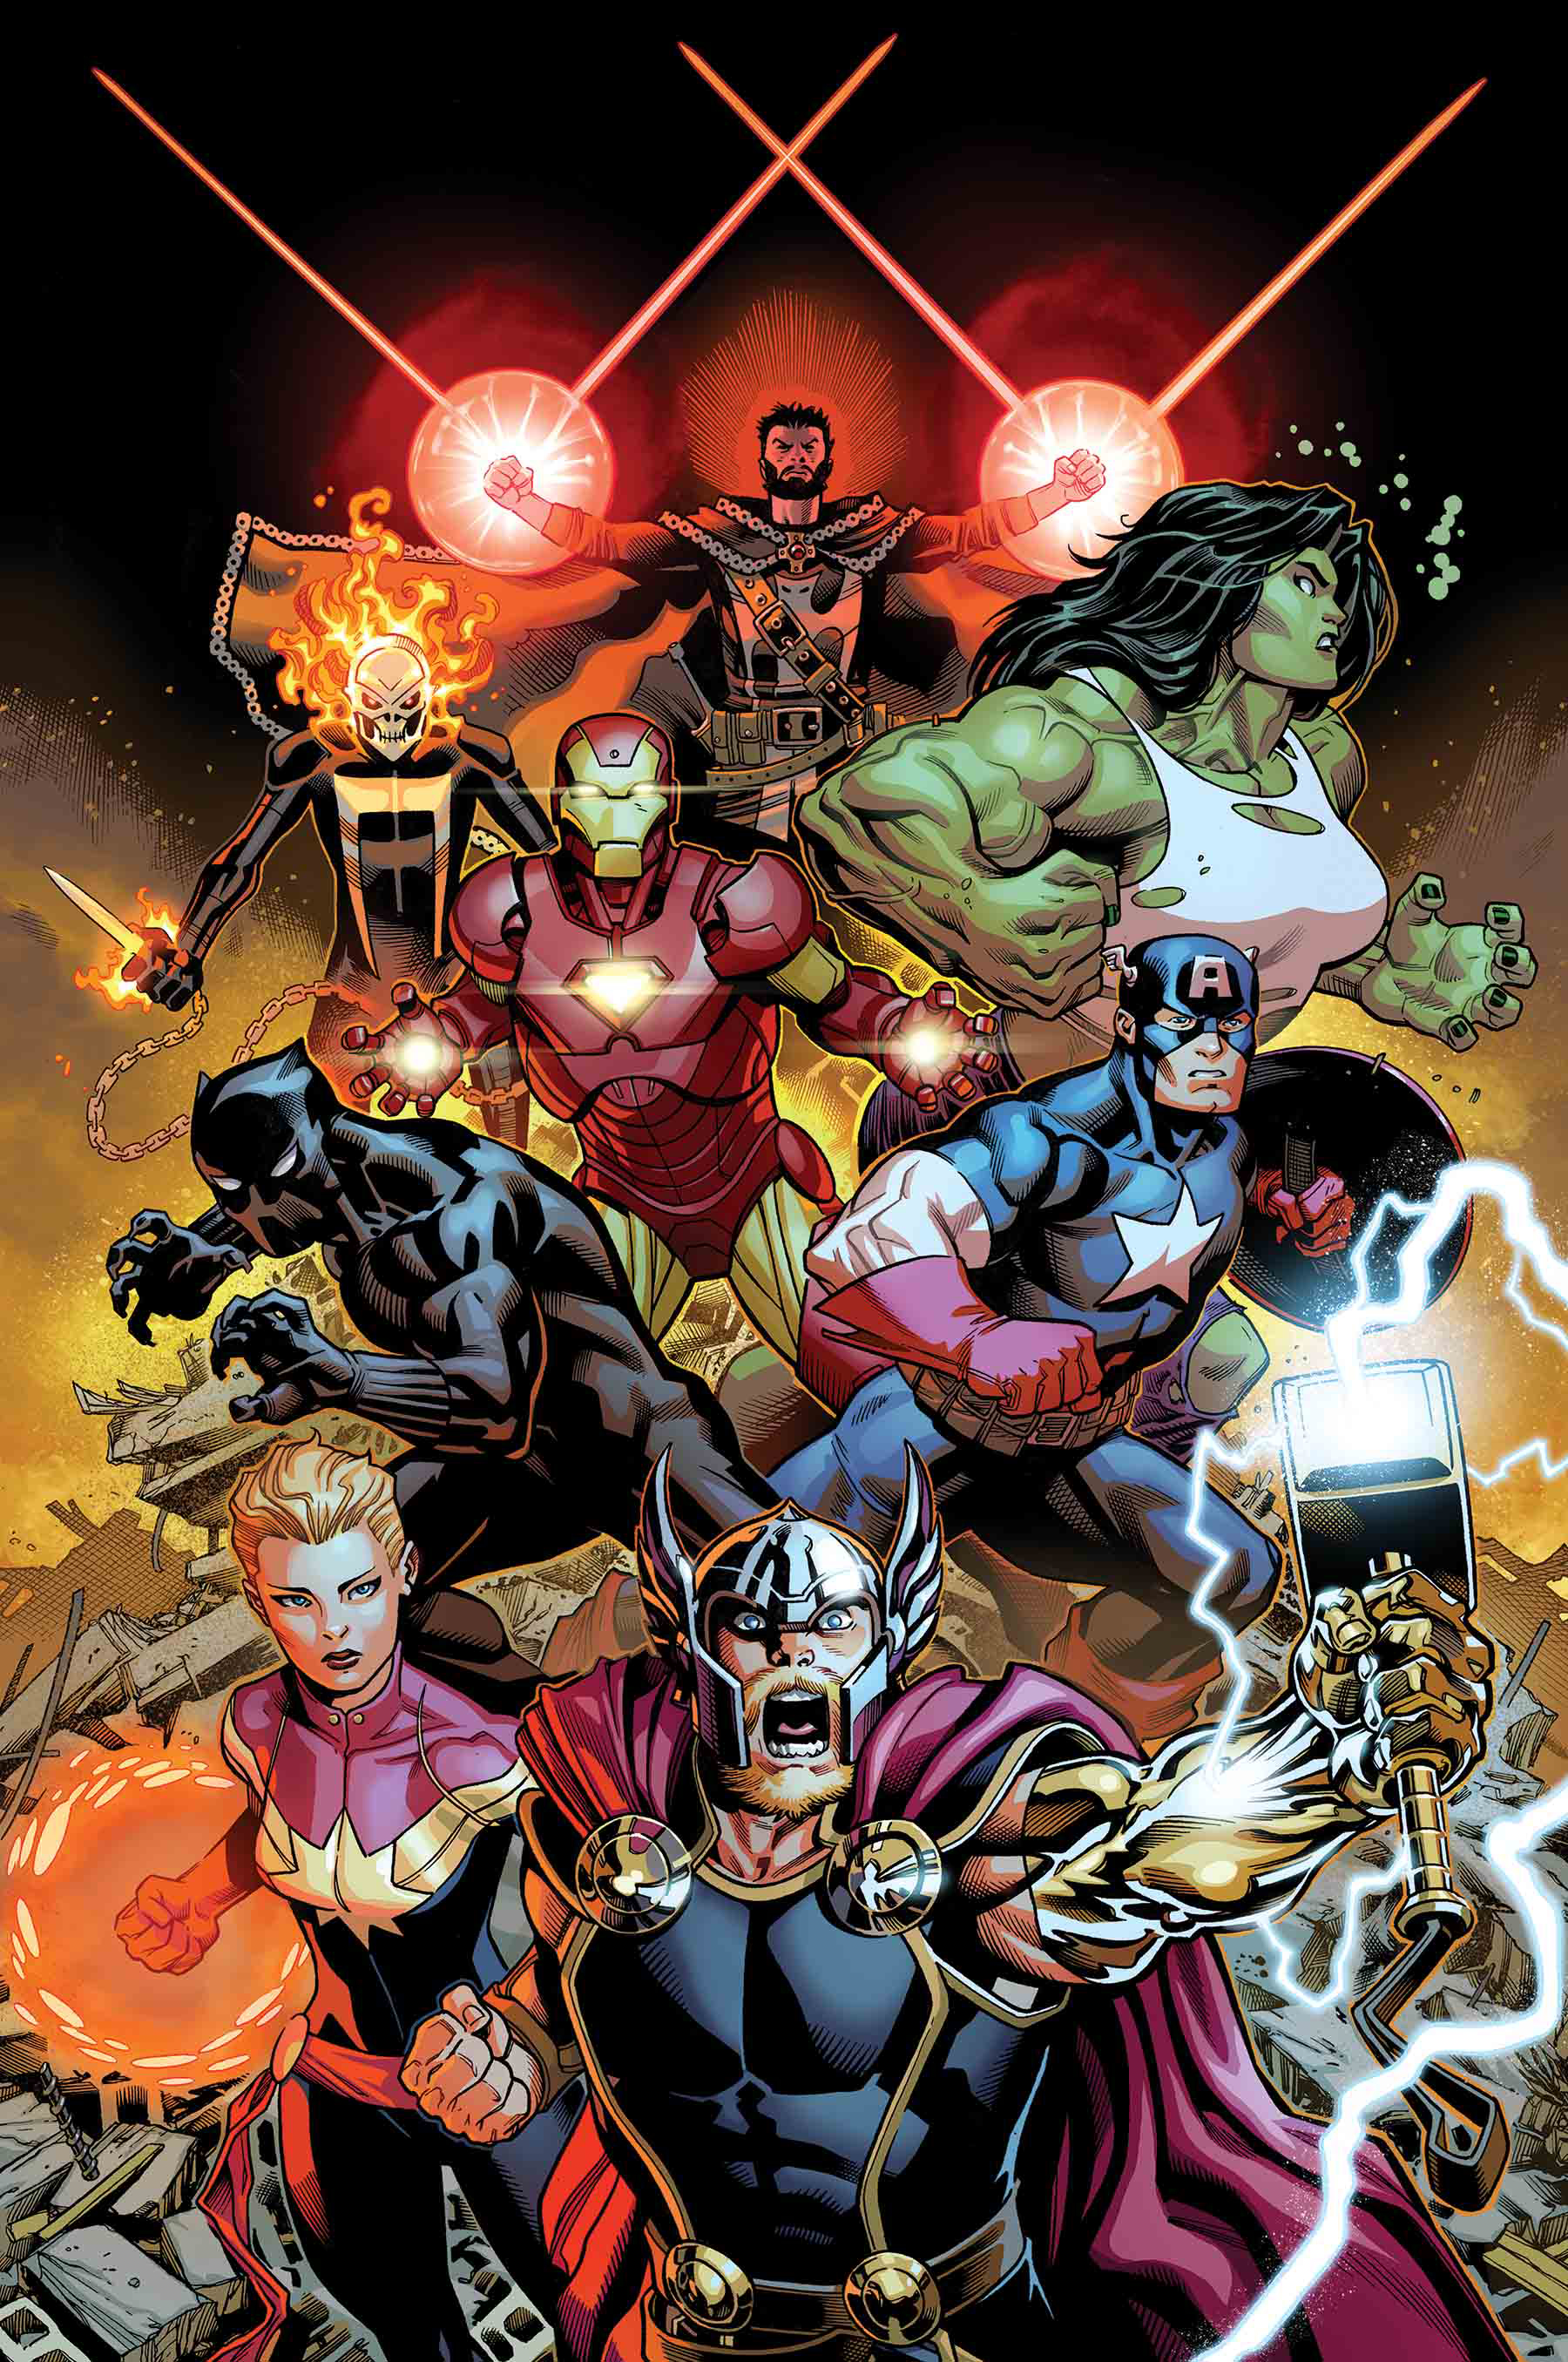 AVENGERS #1 BY MCGUINNESS POSTER